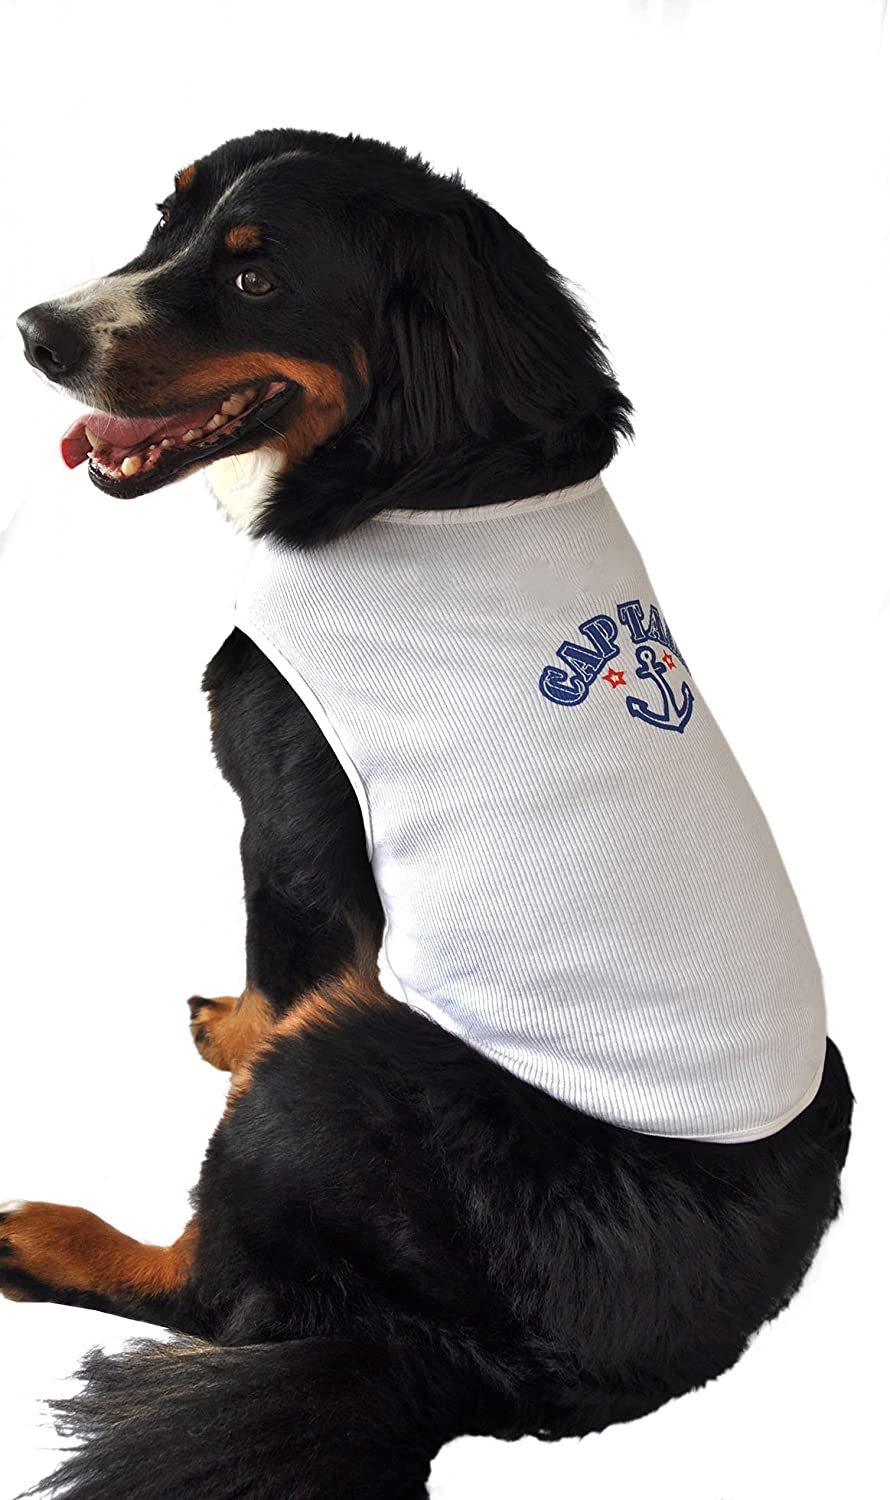 Ruff Ruff and Meow Small Dog Tank Top, Captain, White